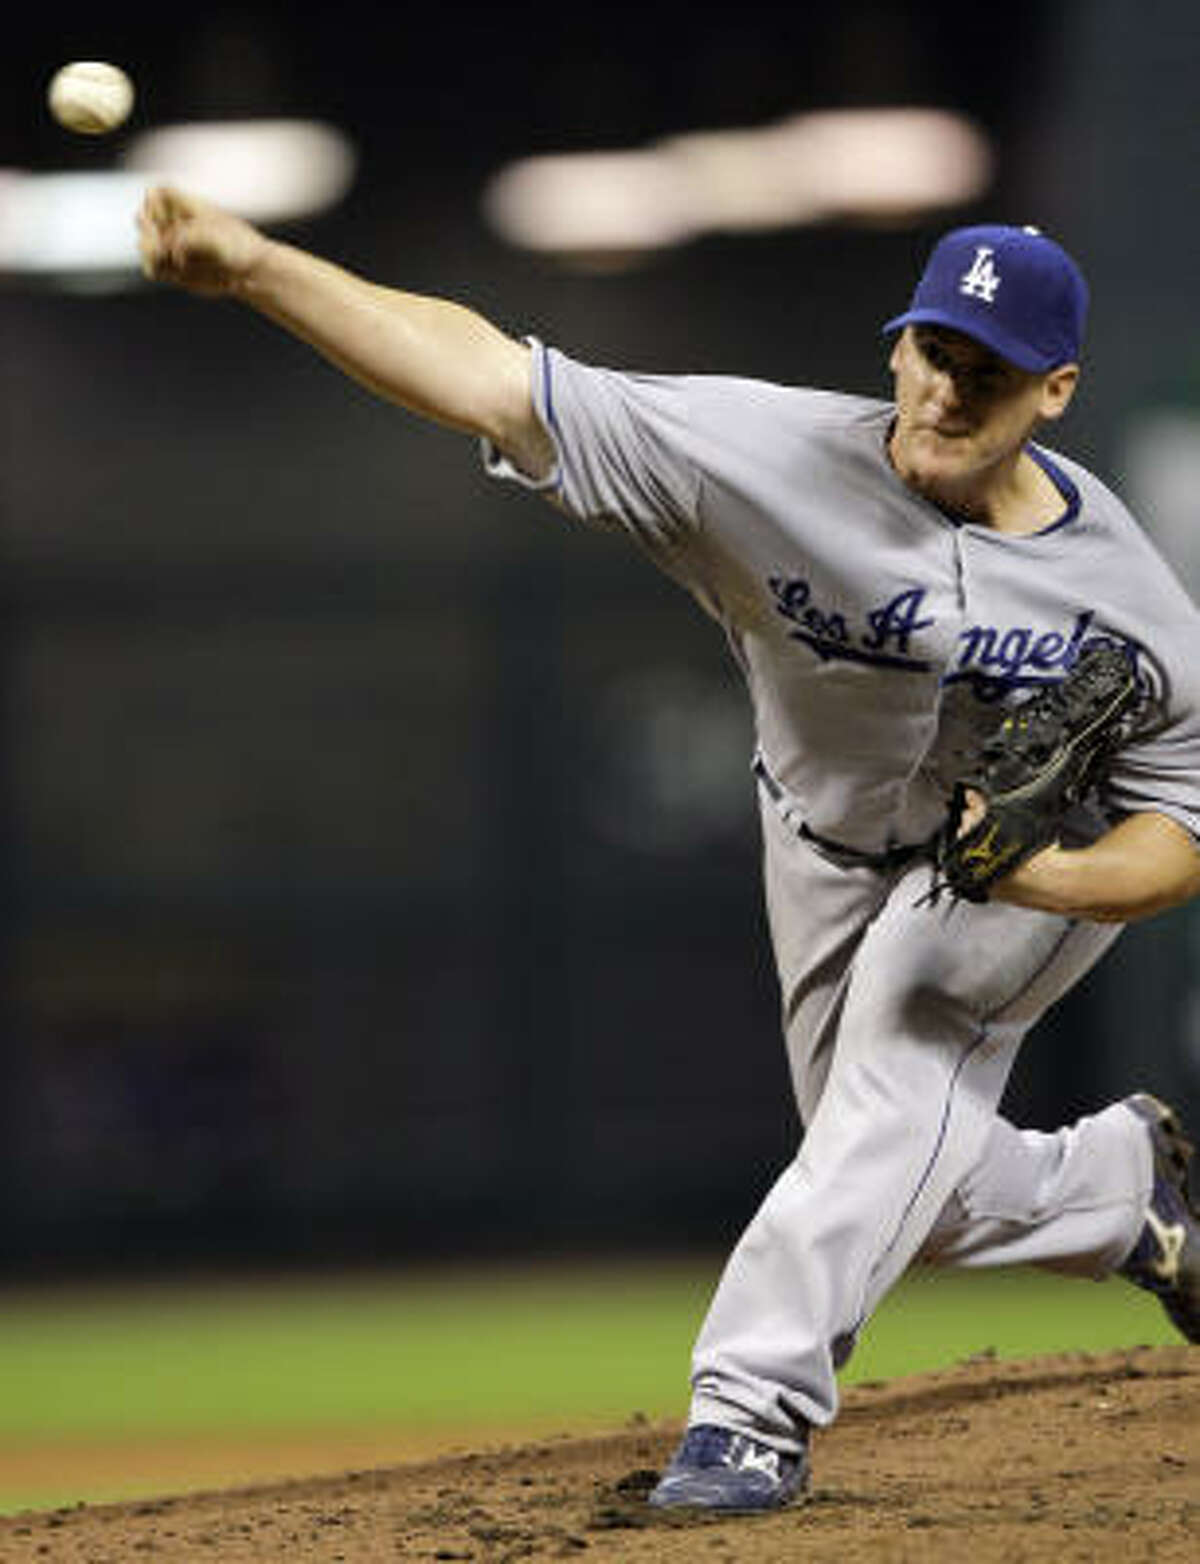 Dodgers starter Chad Billingsley improved to 4-0 after tossing 7 1/3 scoreless innings in Thursday's 2-0 win over the Astros.